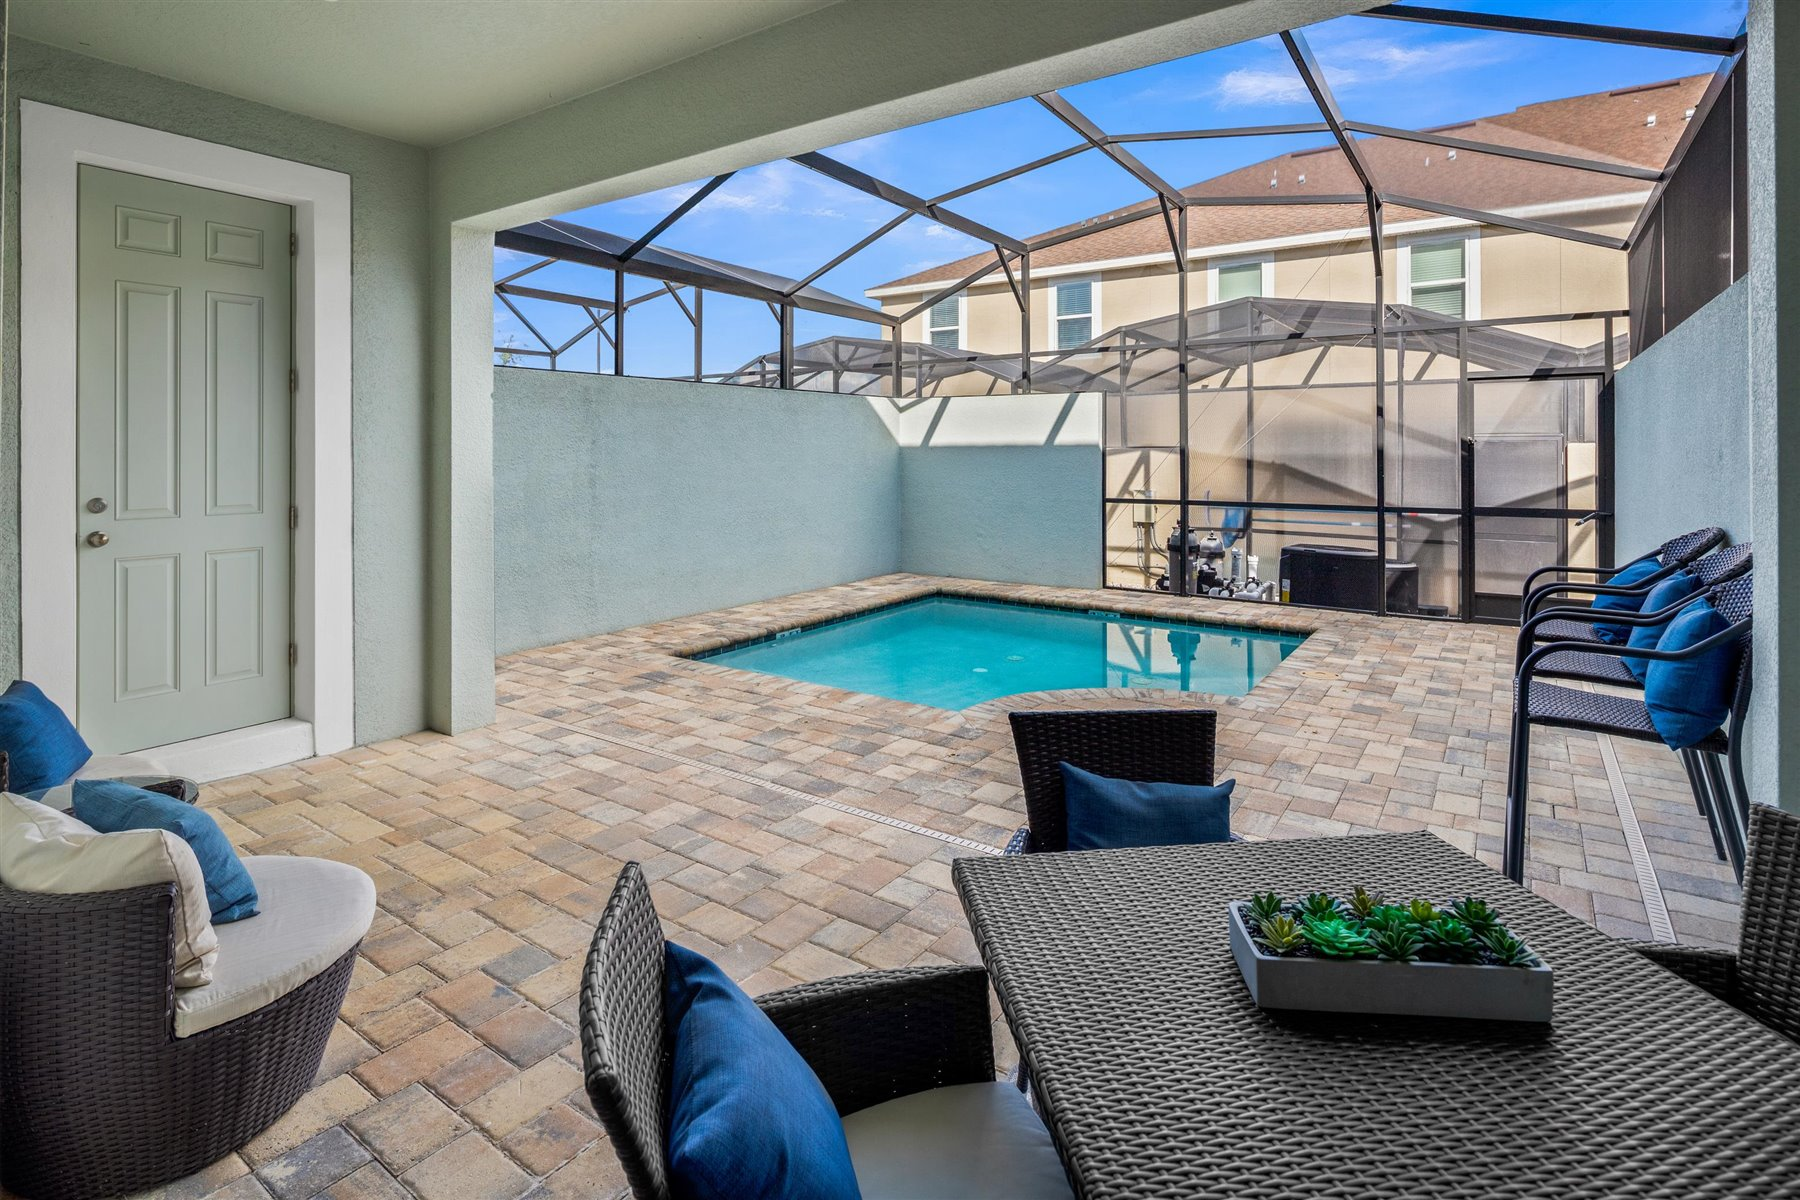 Clearwater Plan Patio at Solara Resort in Kissimmee Florida by Mattamy Homes